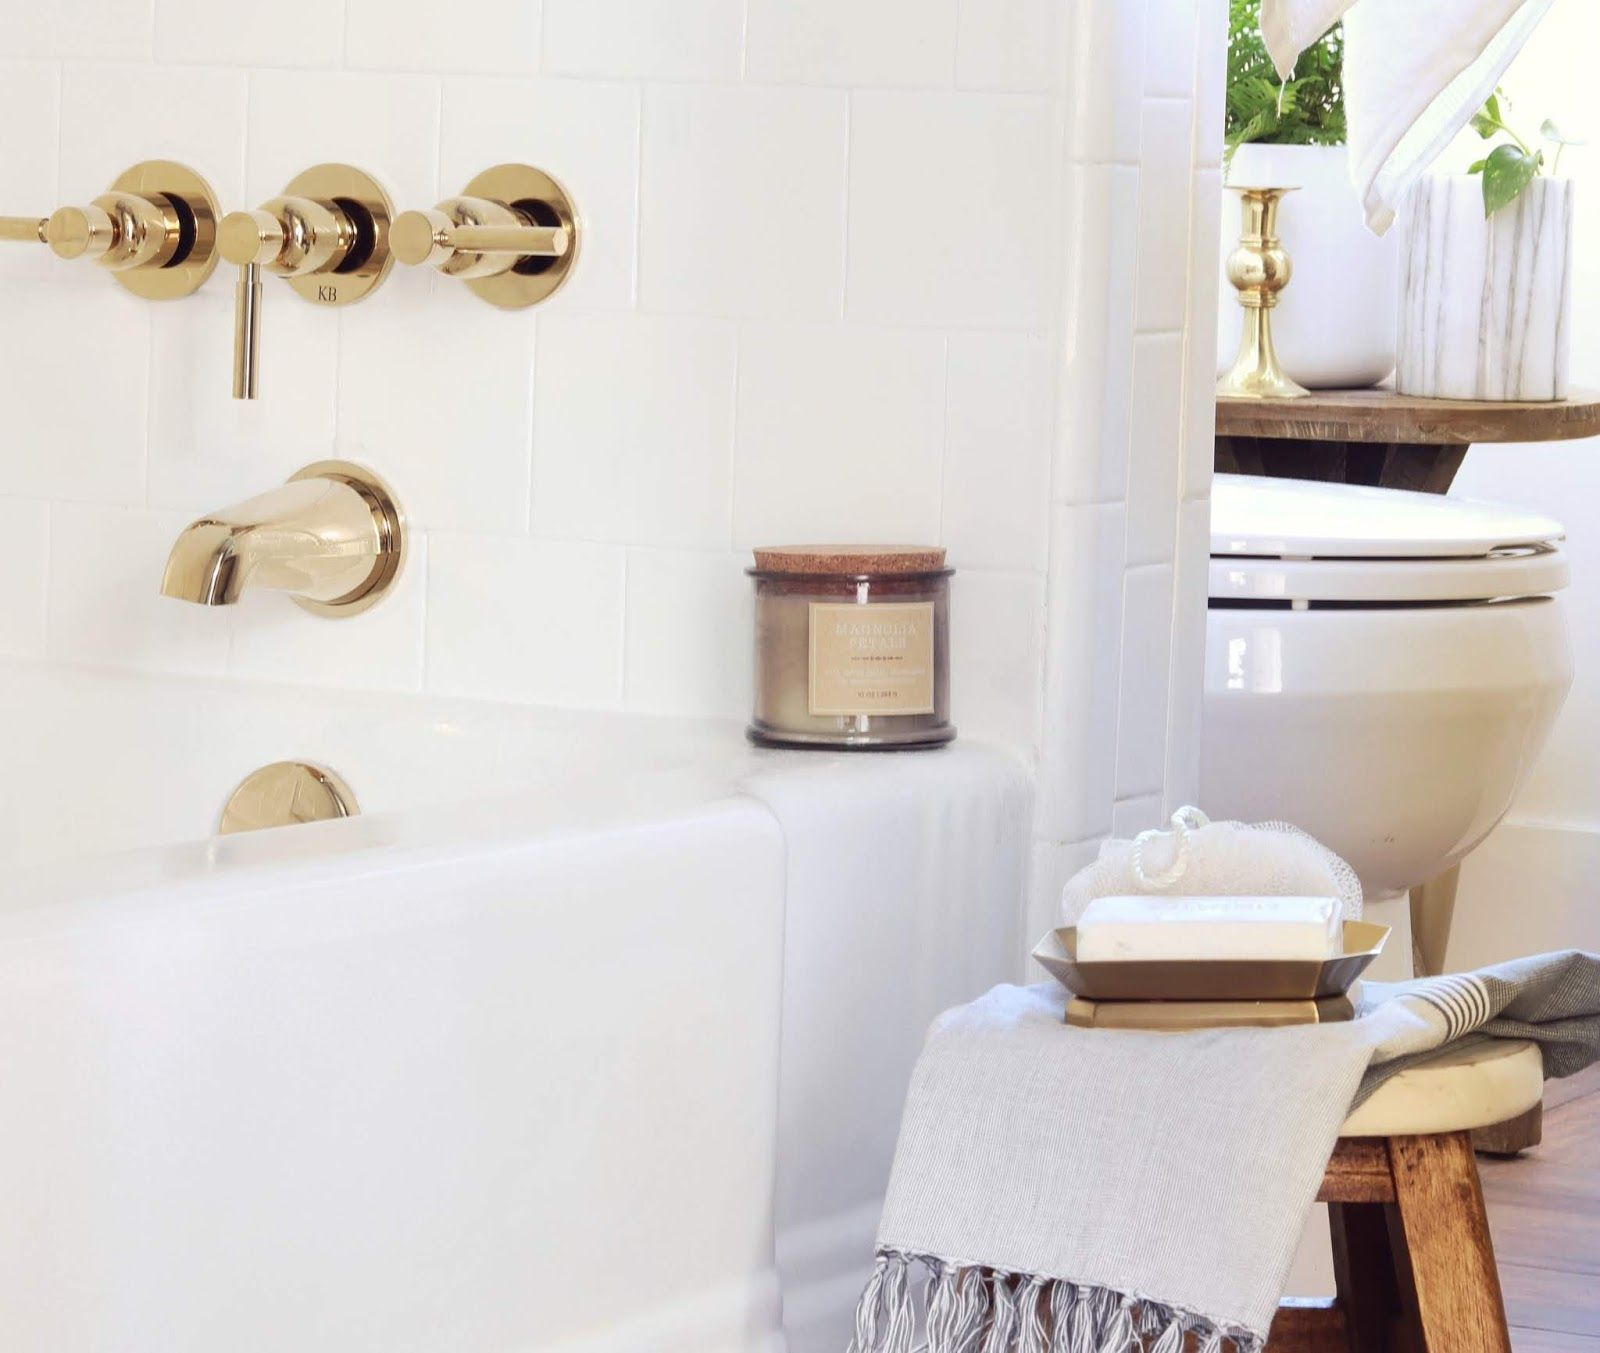 Photo of Bathtub / shower with modern fittings made of polished brass – Made by Carli